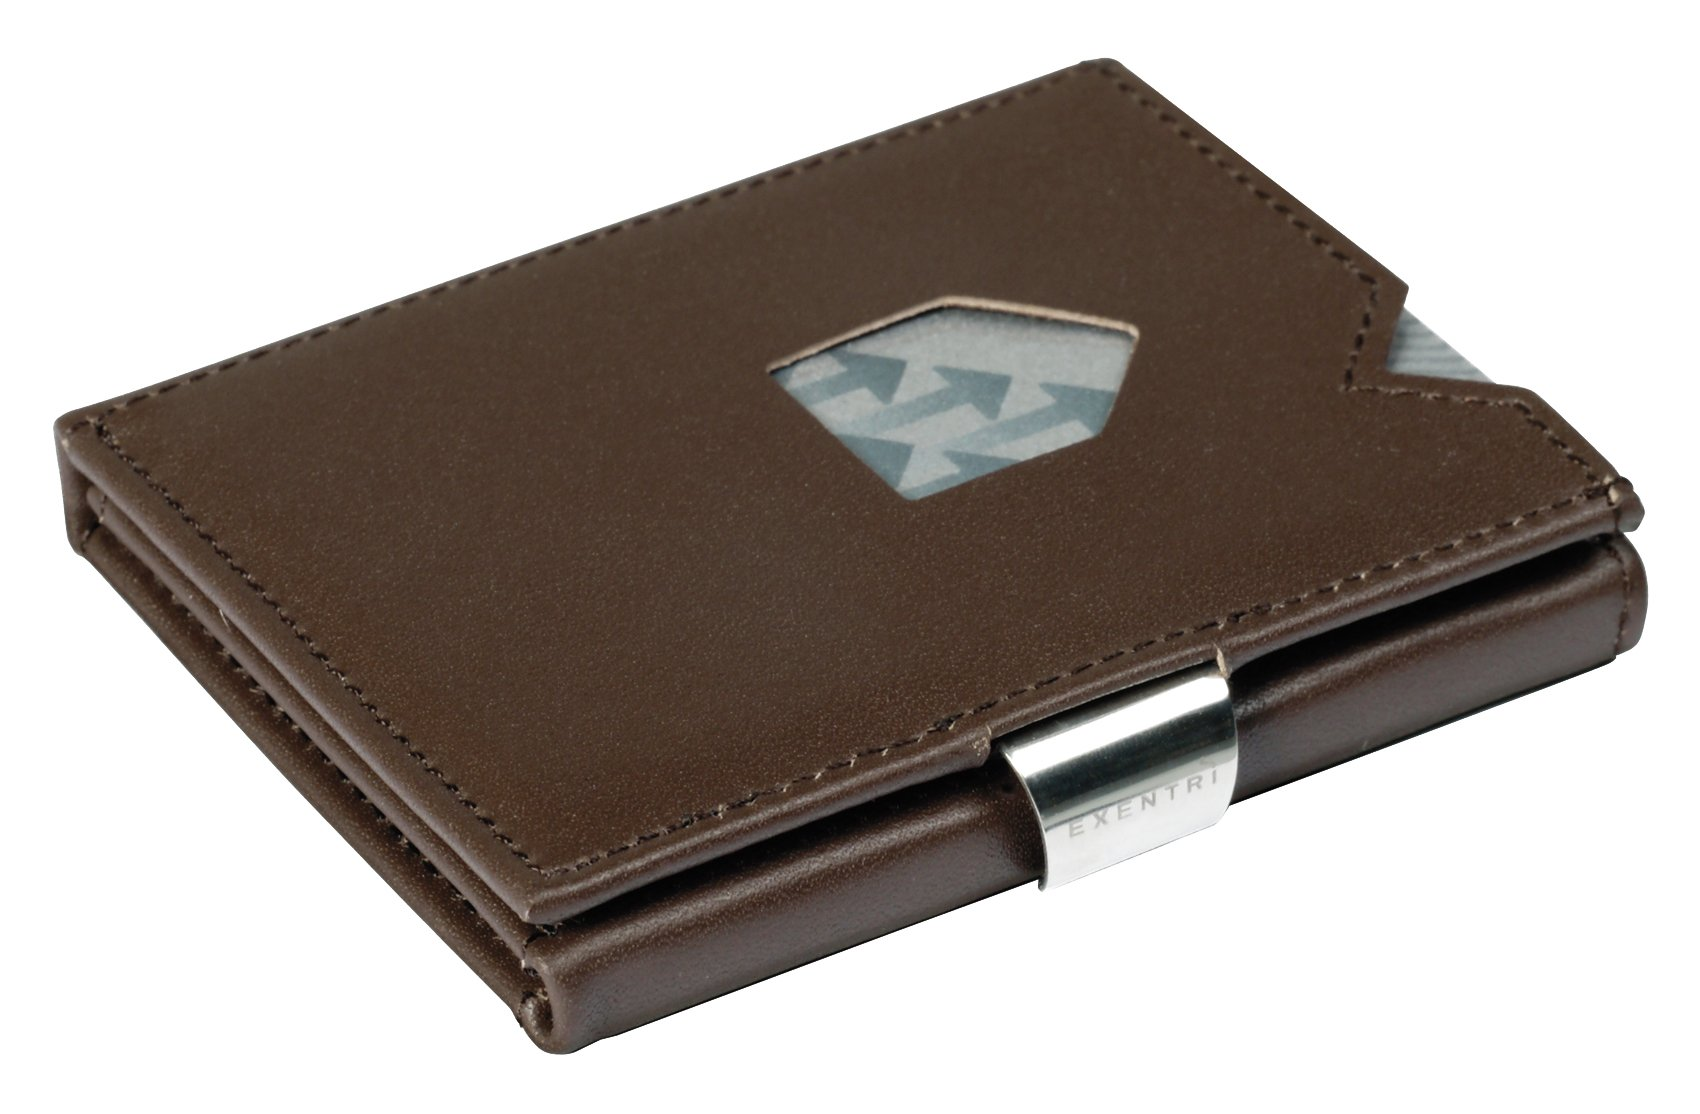 EXENTRI Trifold Wallets w/RFID in Brown - Premium Leather w/Stainless Steel Locking Clip